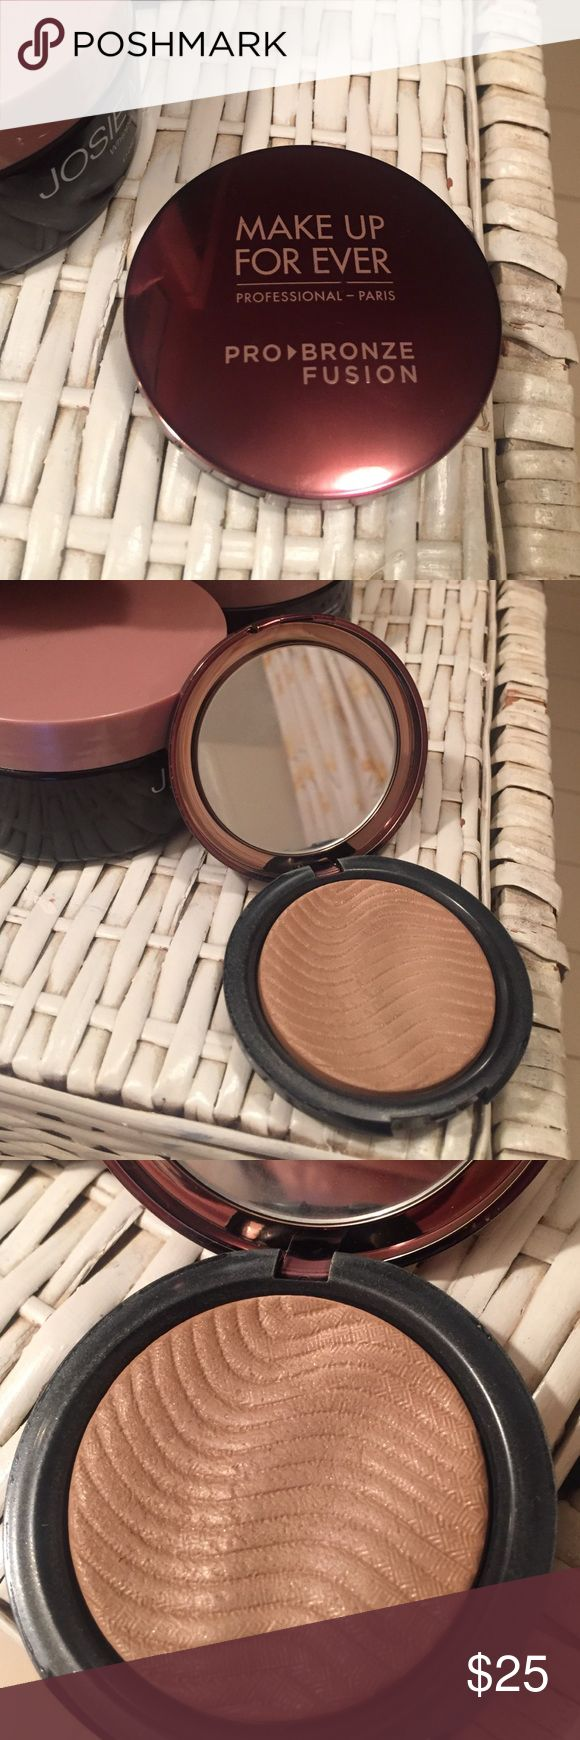 Makeup forever pro fusion bronzer MUFE pro fusion bronzer. This is the lightest shade. EUC barely used, the indents on the surface are barely touched. Gorgeous natural bronzer! Makeup Forever Makeup Bronzer